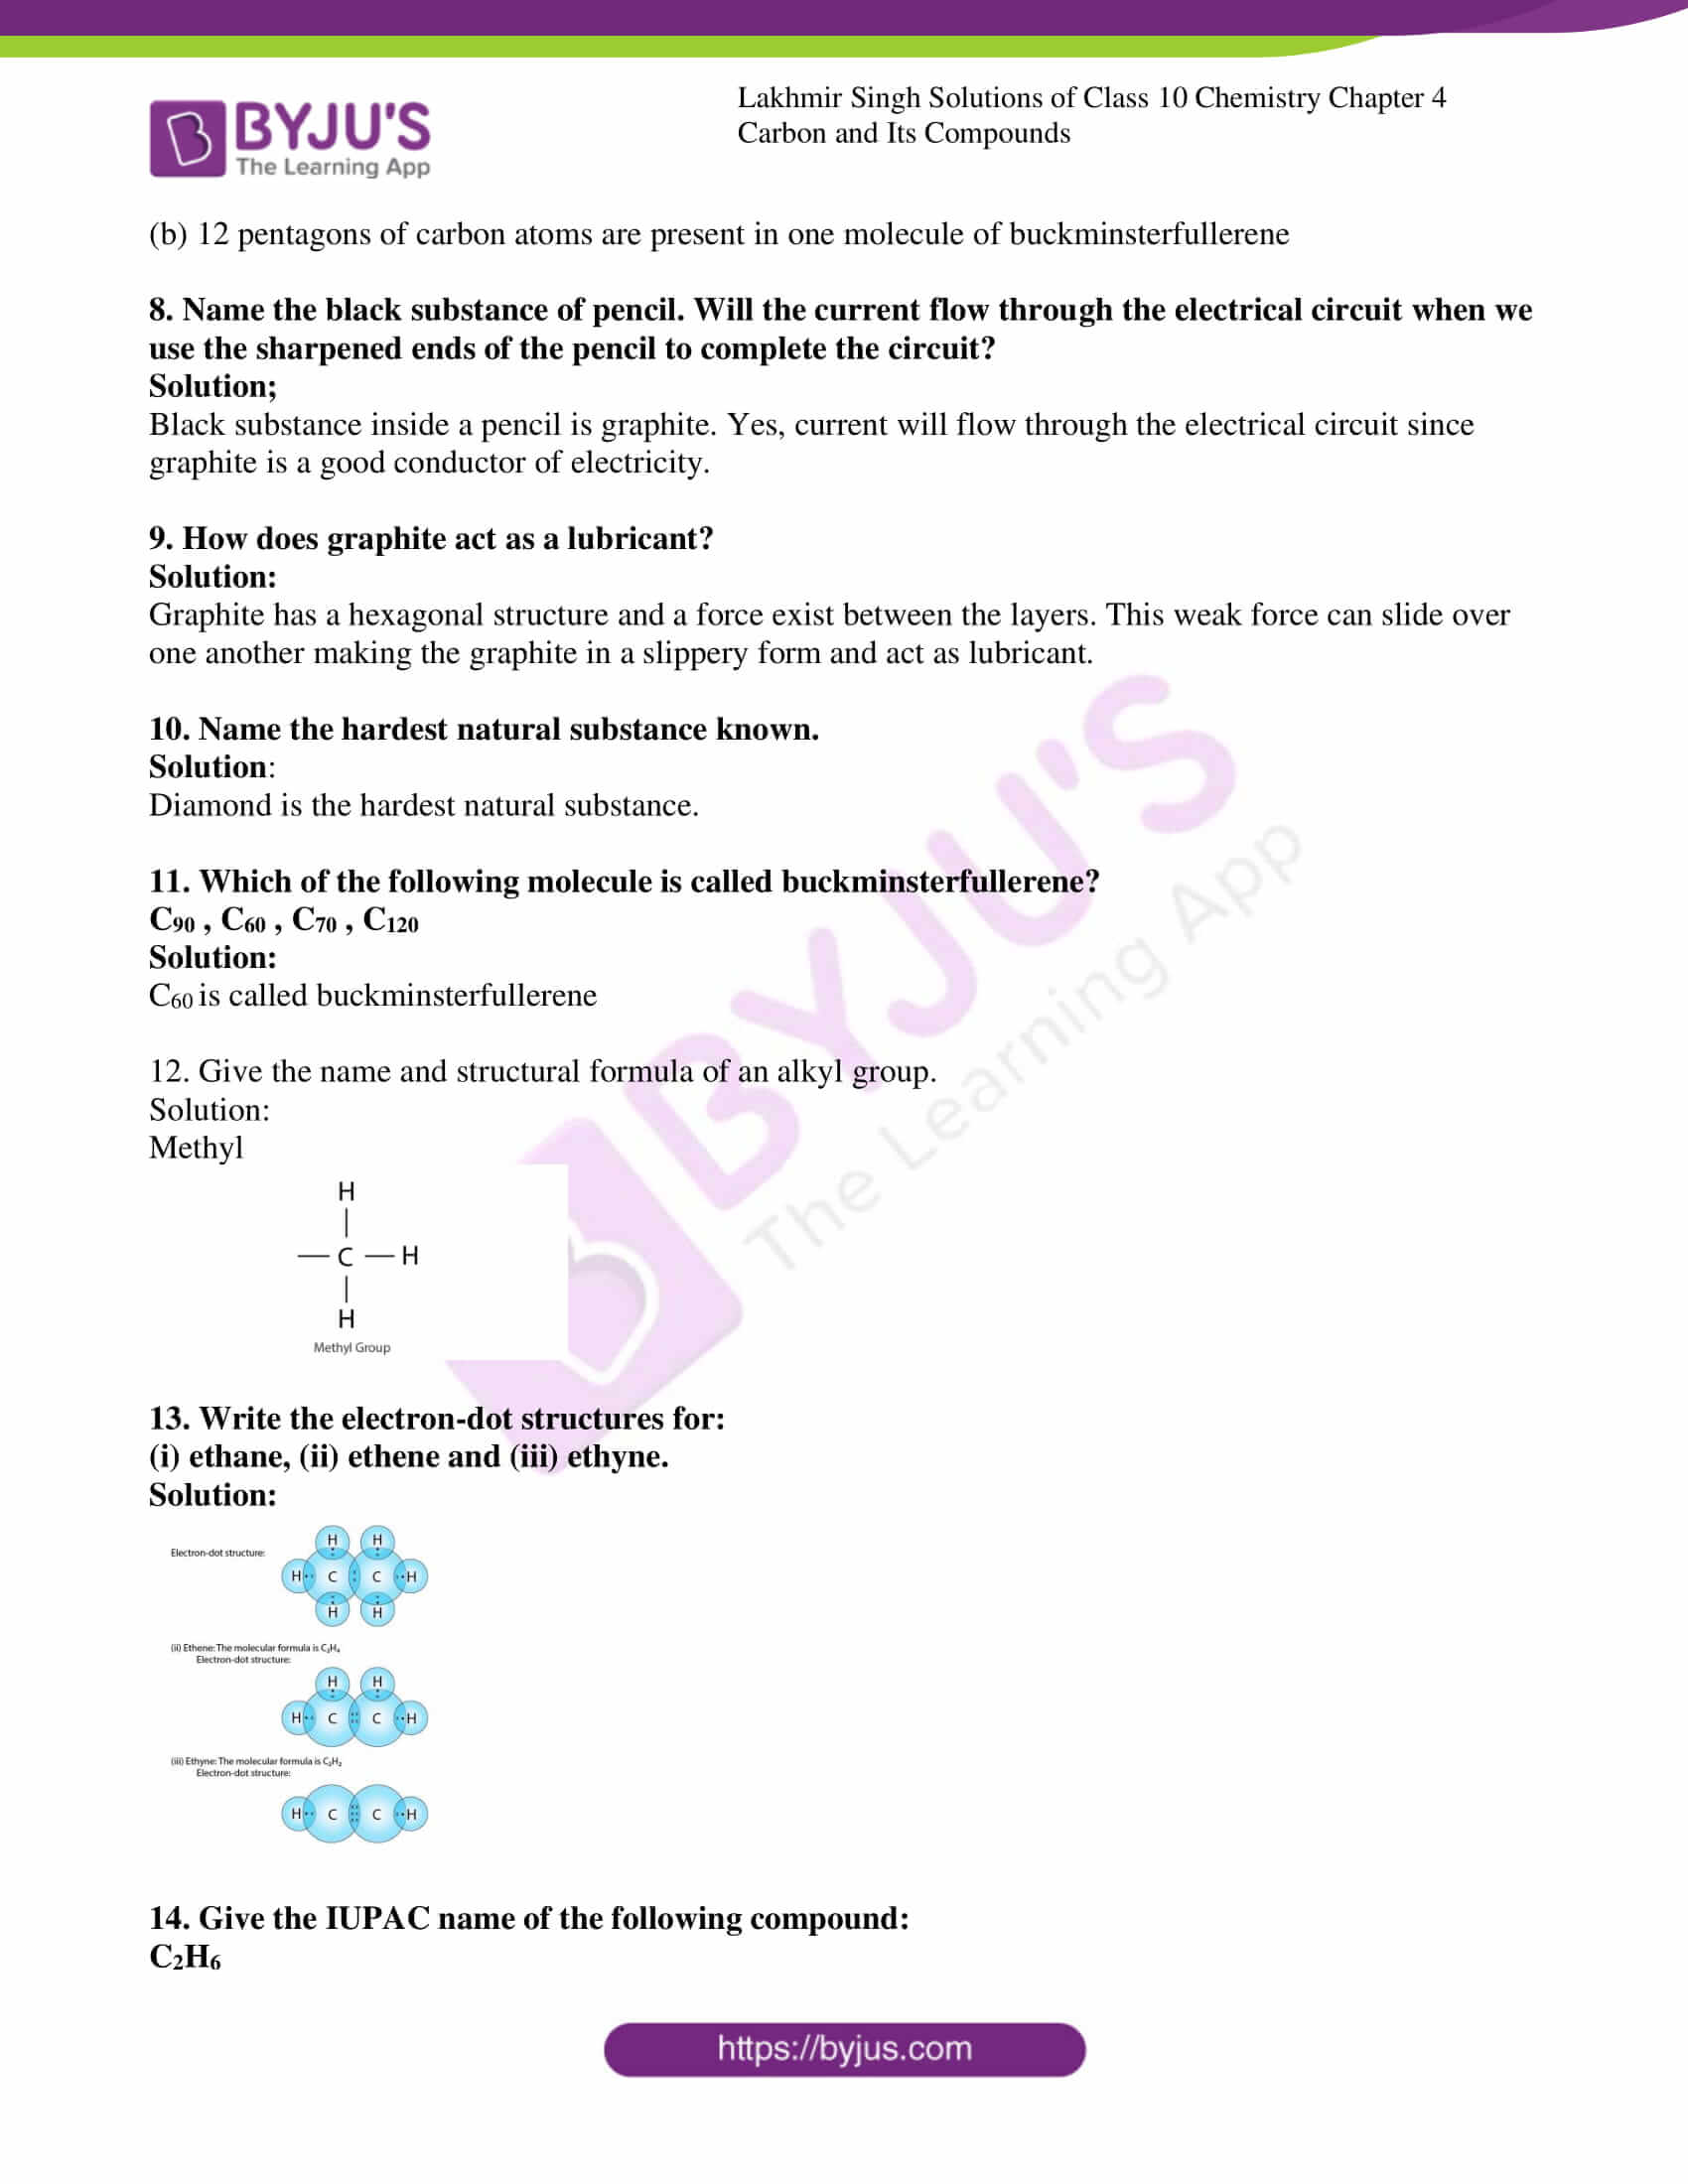 lakhmir singh solutions class 10 chemistry chapter 4 02